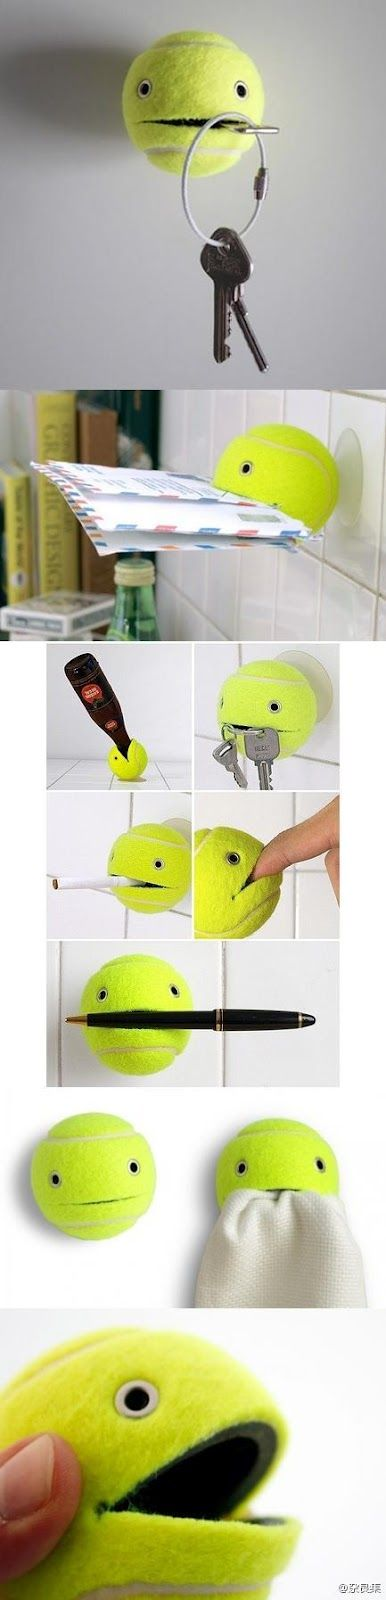 Dishfunctional Designs: Cutest Ever Upcycled Tennis Ball: Ball Holders, Stuff, Cute Ideas, Tennisball, Things, Keys Holders, Diy, Tennis Ball, Crafts